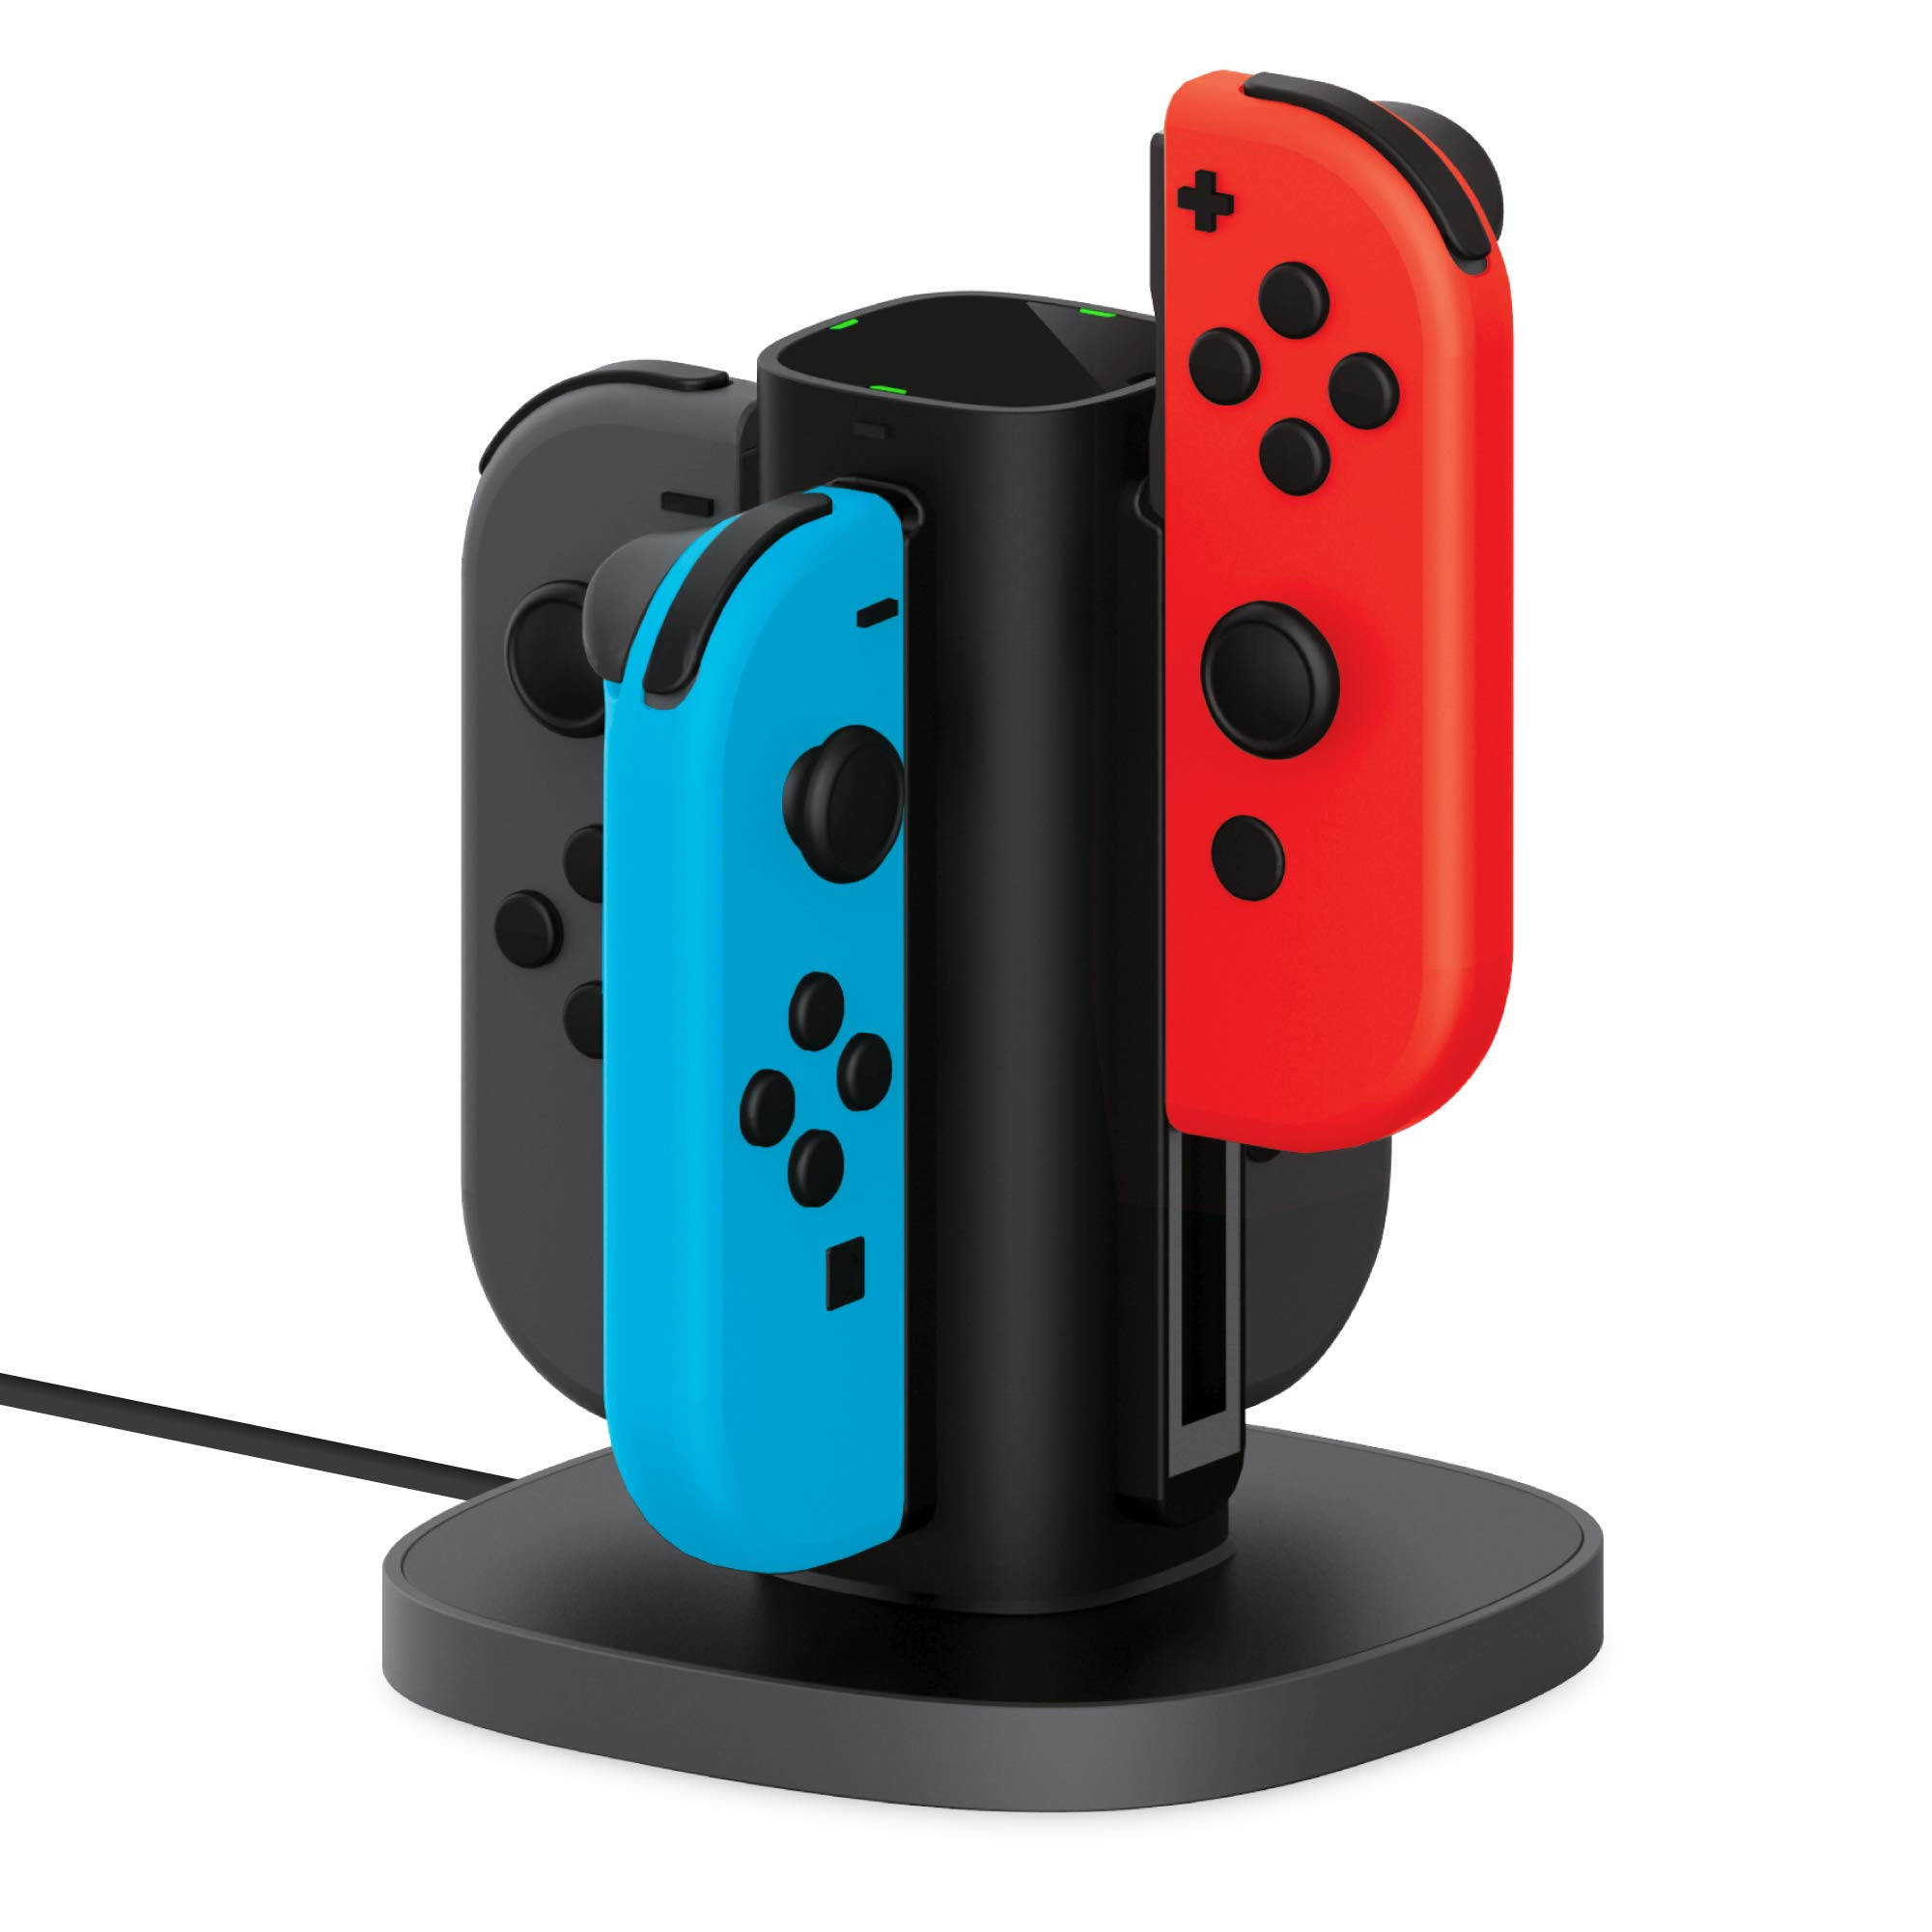 Joy Con Charging Dock for Nintendo Switch by TalkWorks | Docking Station Charges up to 4 Joy-Con Controllers Simultaneously - Controllers NOT Included (Black)